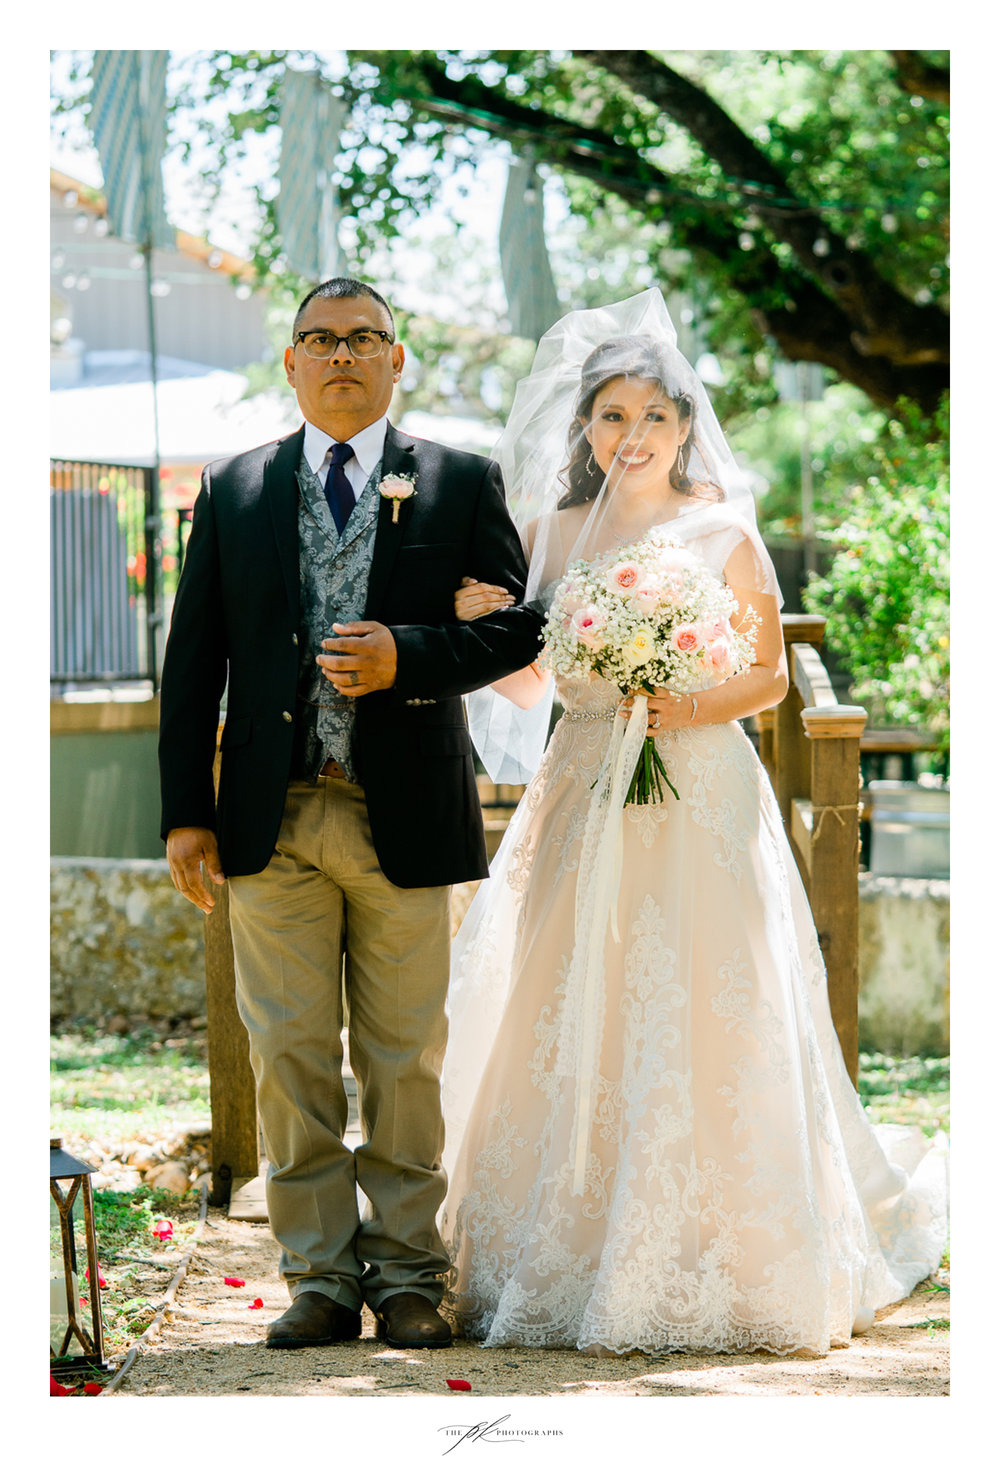 Bride and her father during their wedding ceremony at Magnolia Halle in San Antonio, Texas - Photographed by The PK Photographs